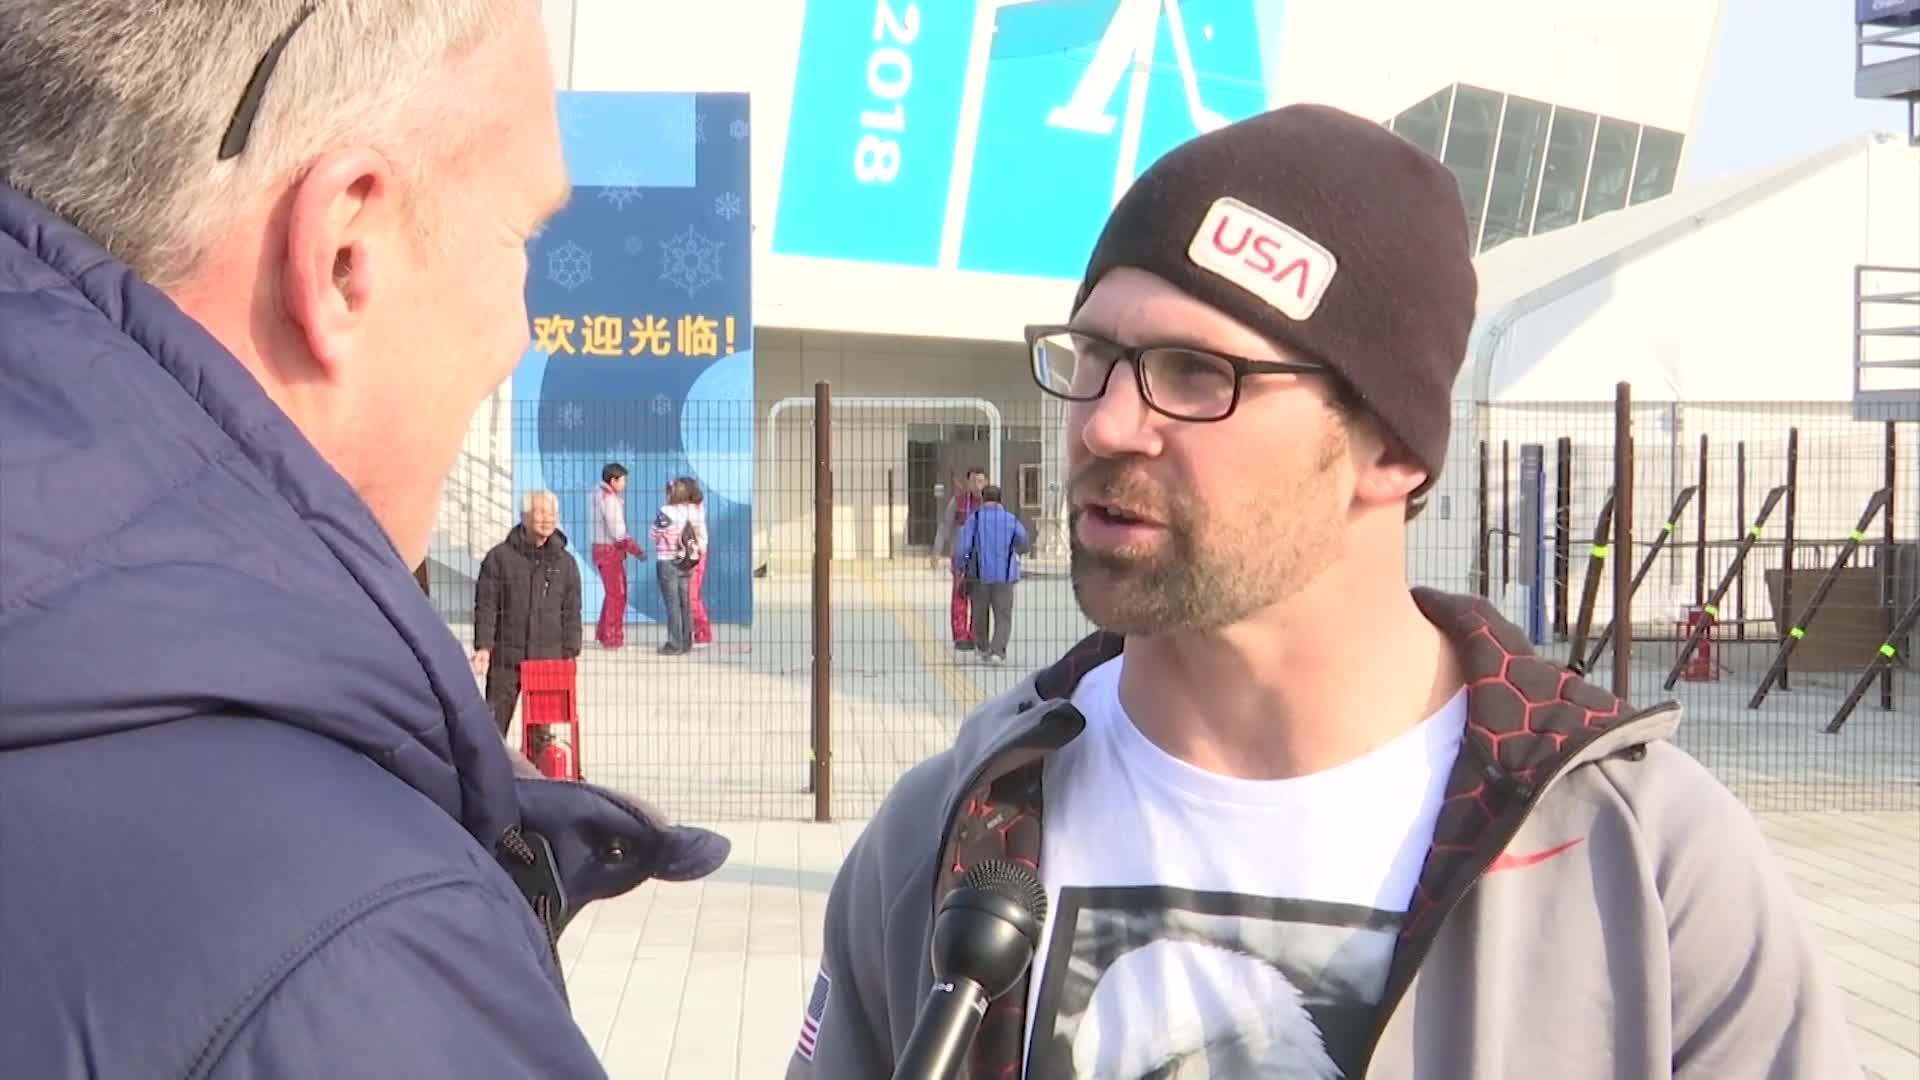 Team USA_s Nick Baumgartner may have just missed the podium in snowboard cross, but he says sharing the experience with his son changed everyth_298760